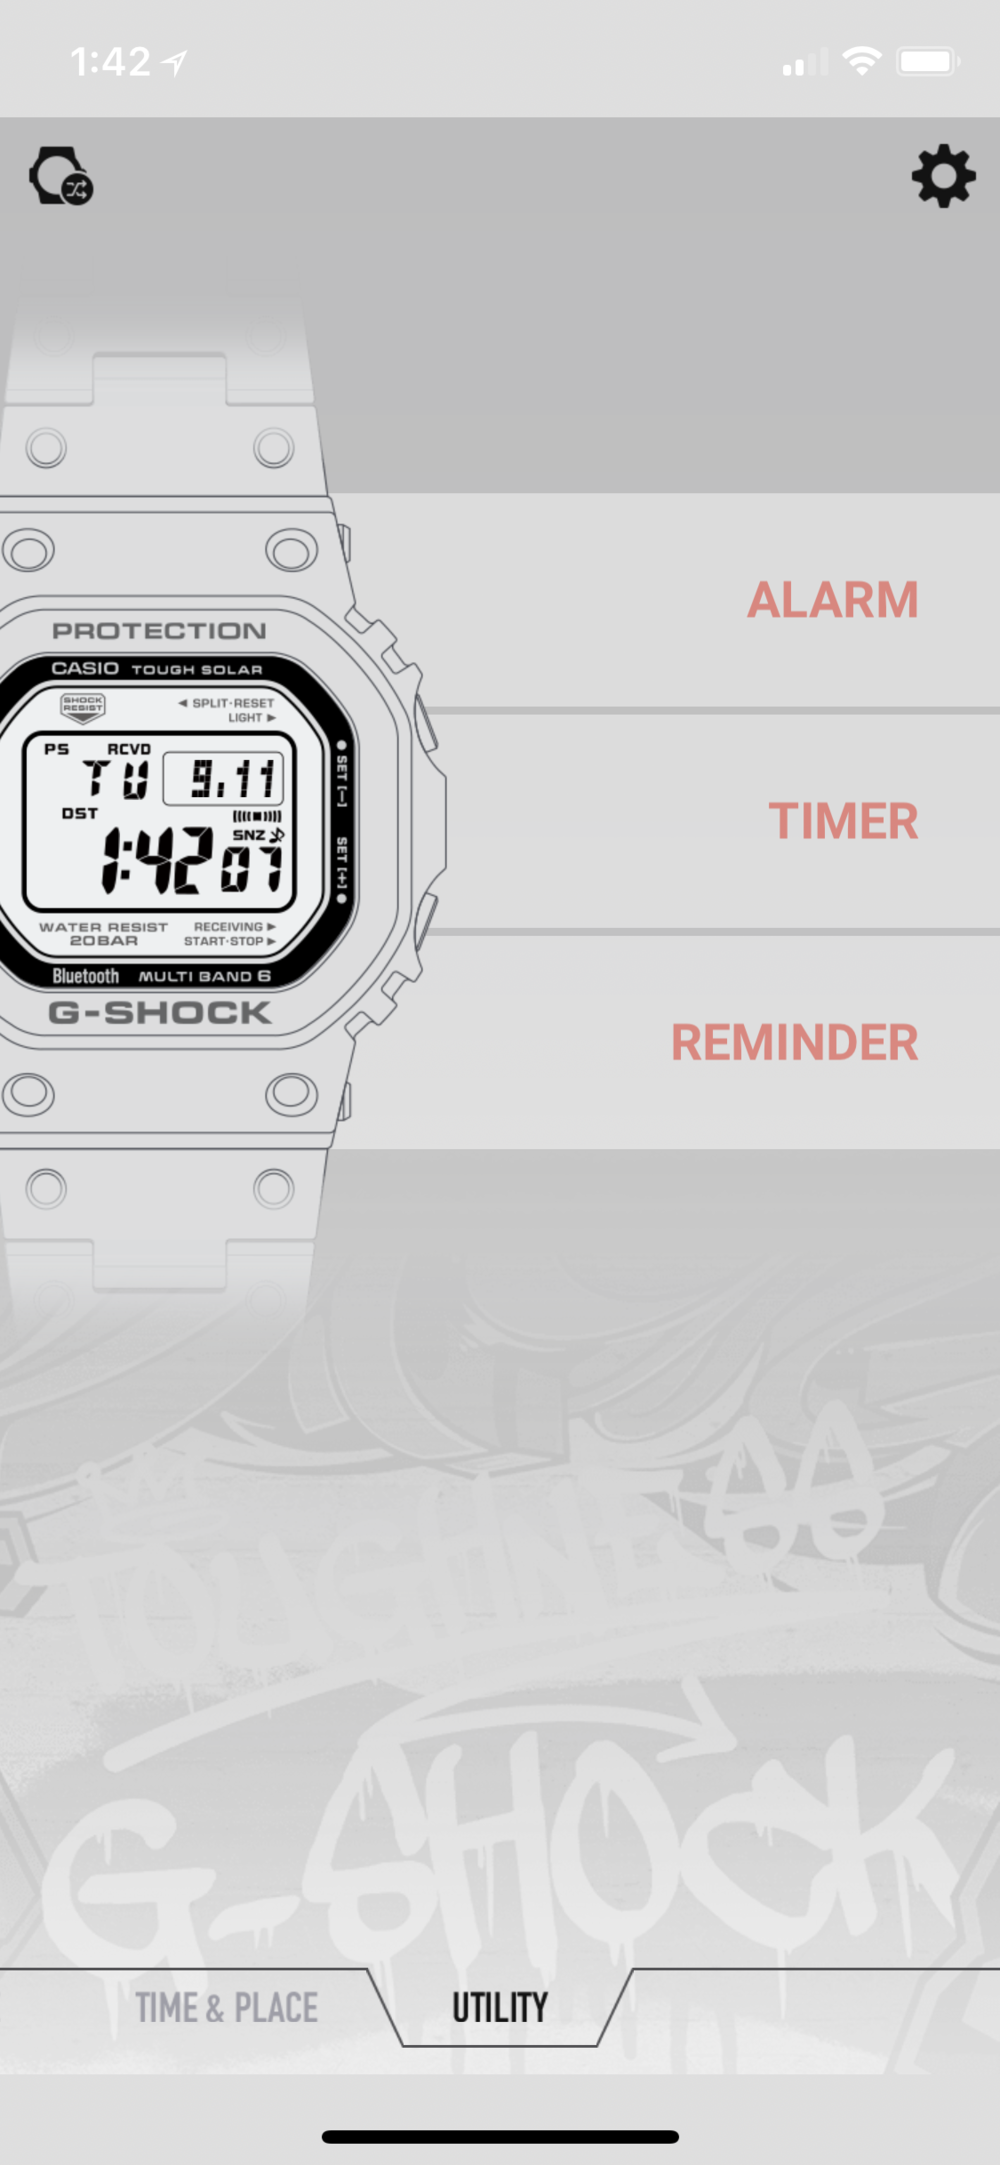 casio g-shock 35th anniversary models - 75.PNG